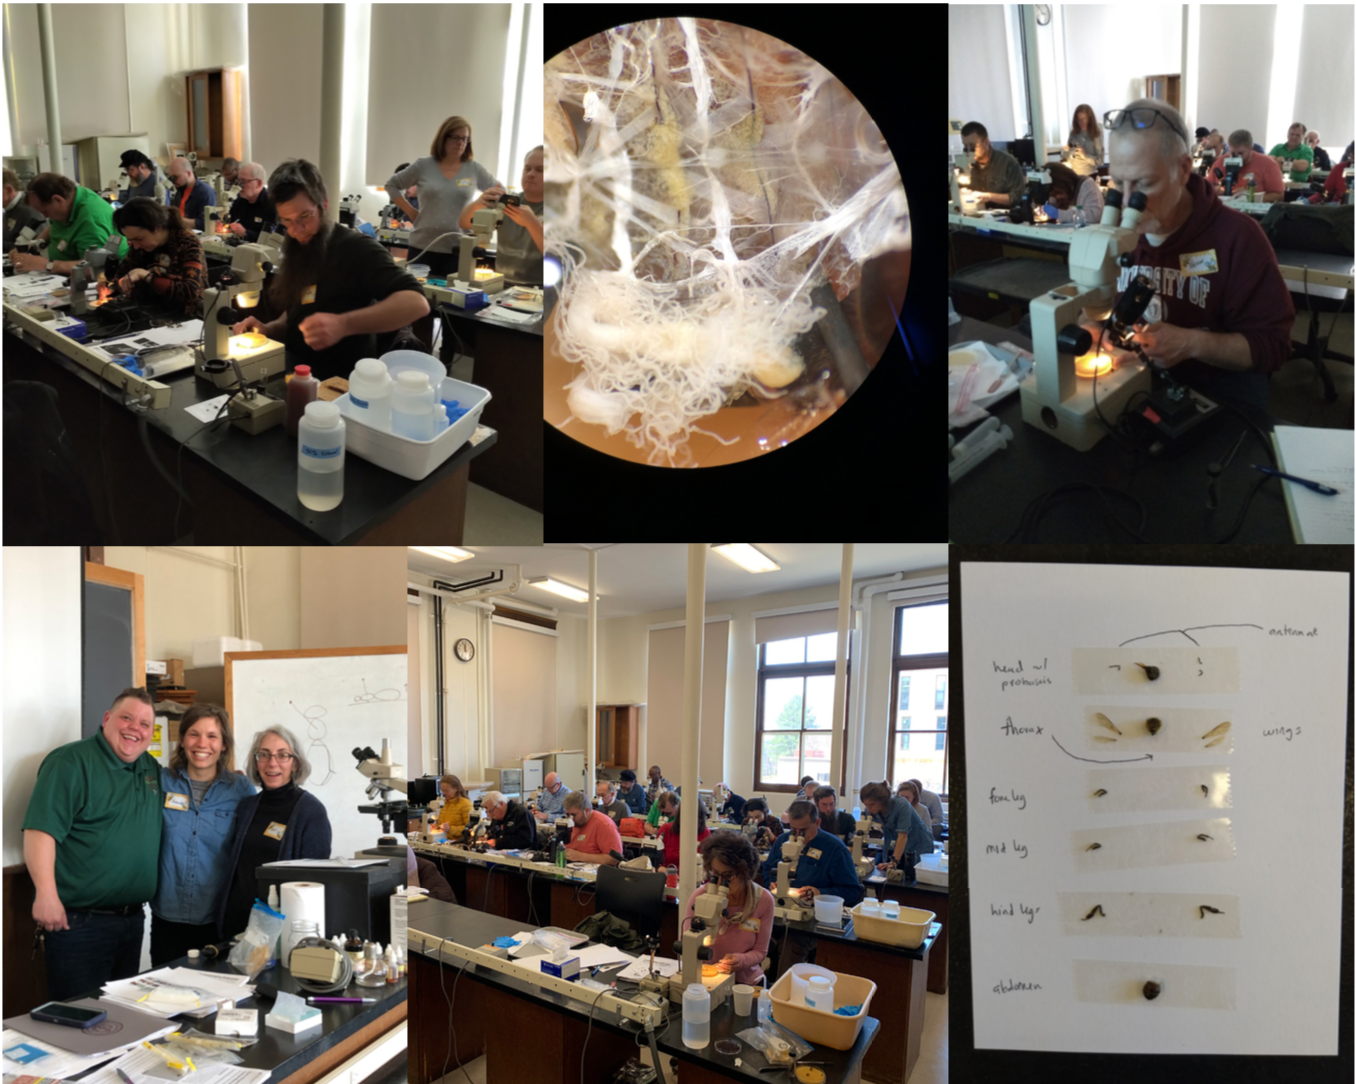 Photos from microscope workshop